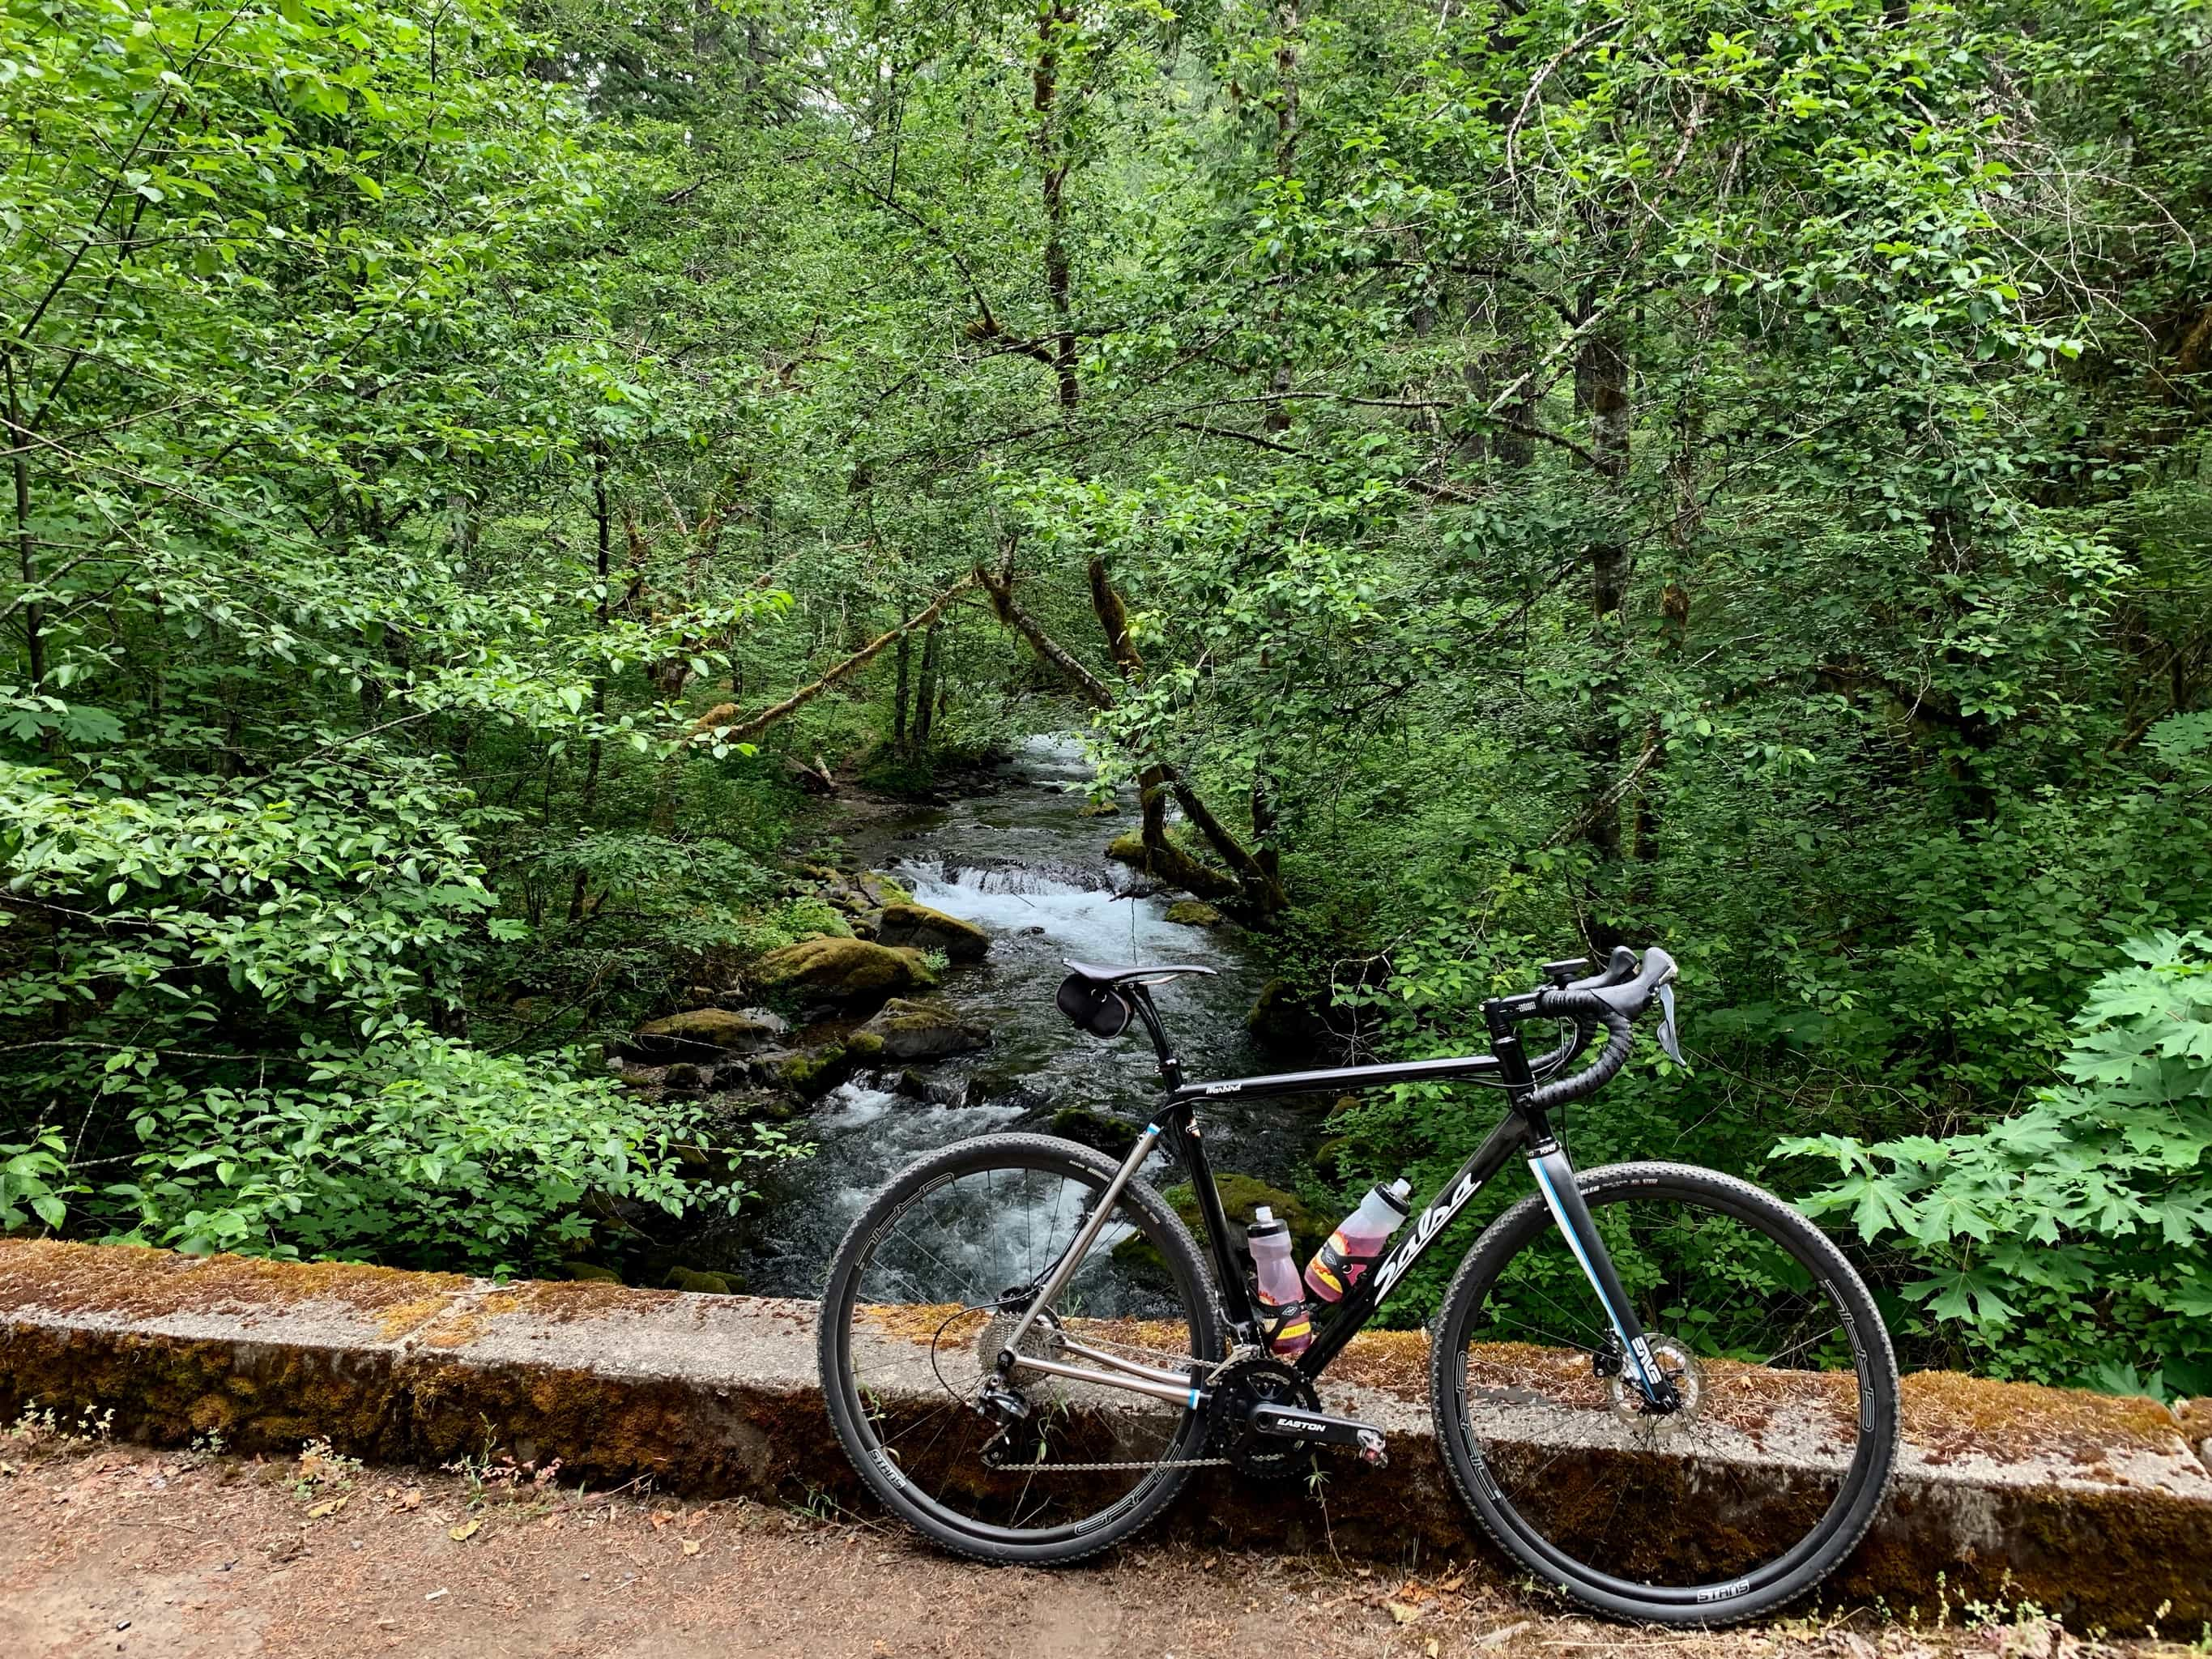 Bike on bridge at with Panther Creek in the background, near the Columbia River Gorge.